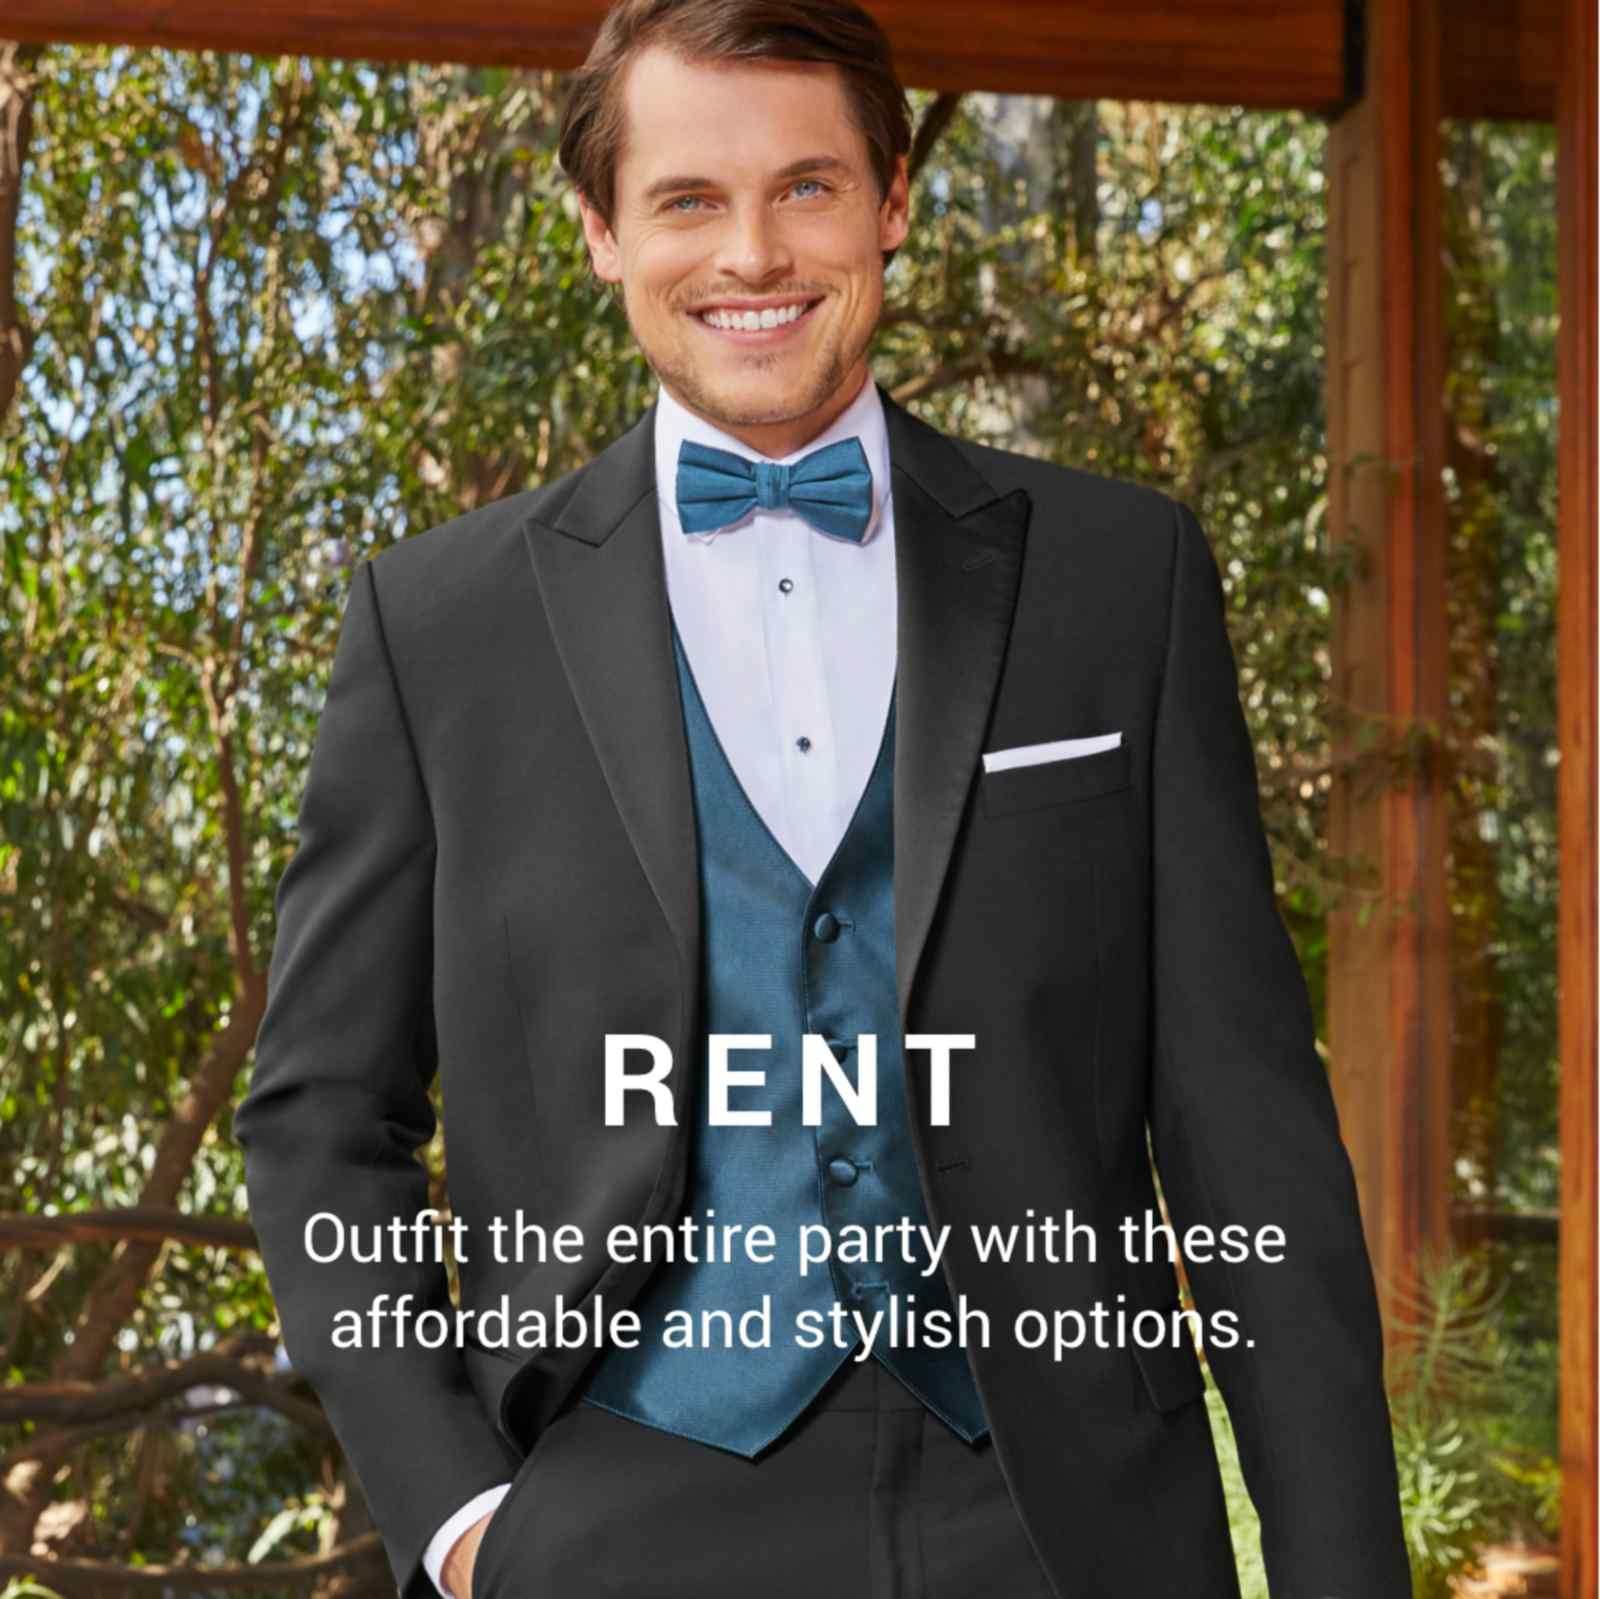 Wedding Tuxedos Wedding Suits For Men Groom Moores Clothing